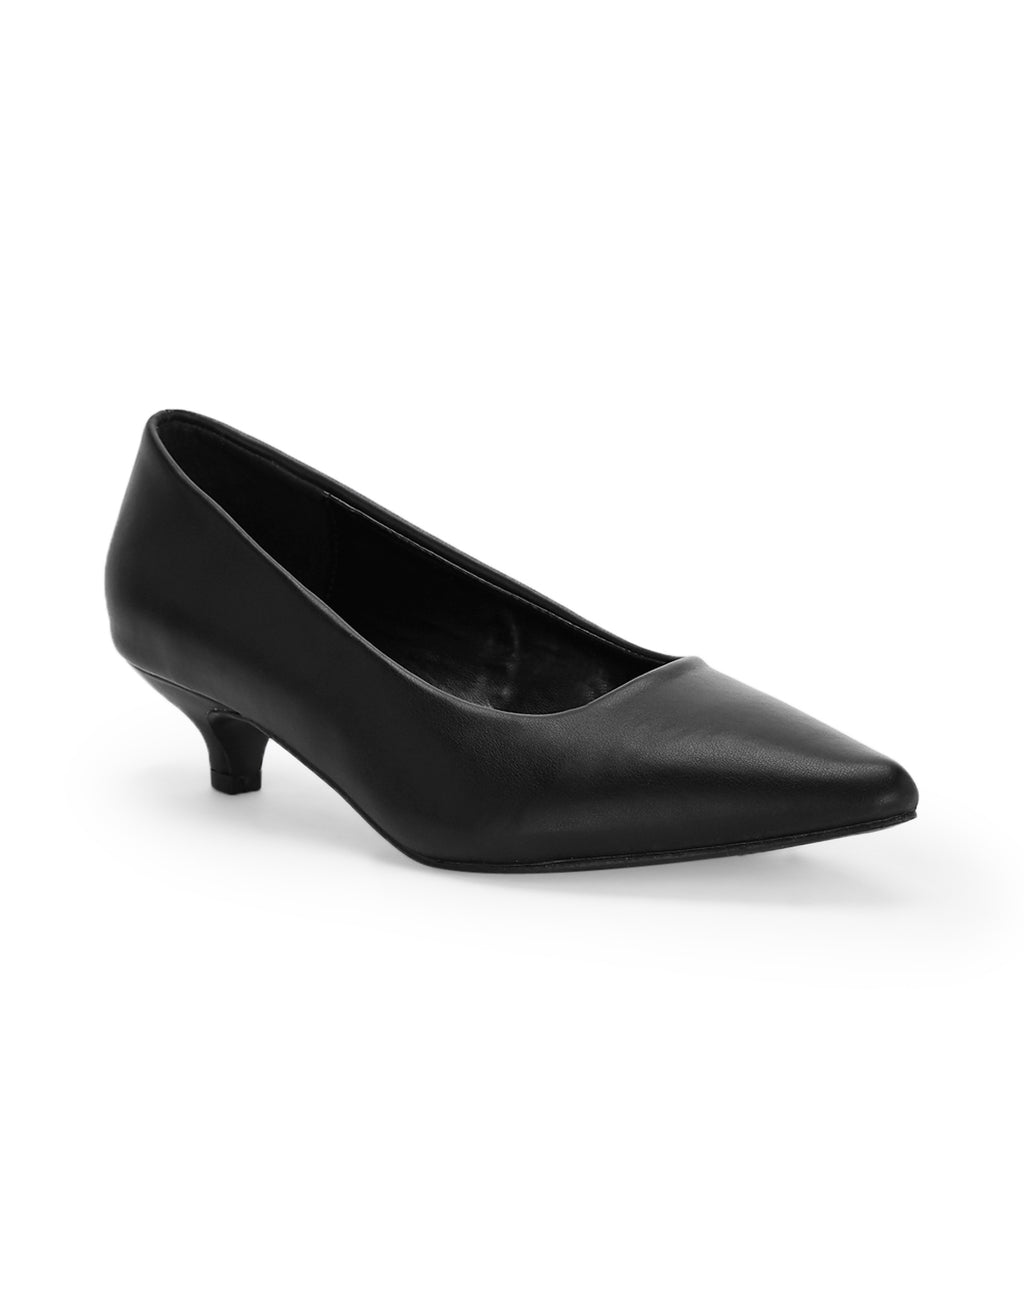 Laella Black Pumps